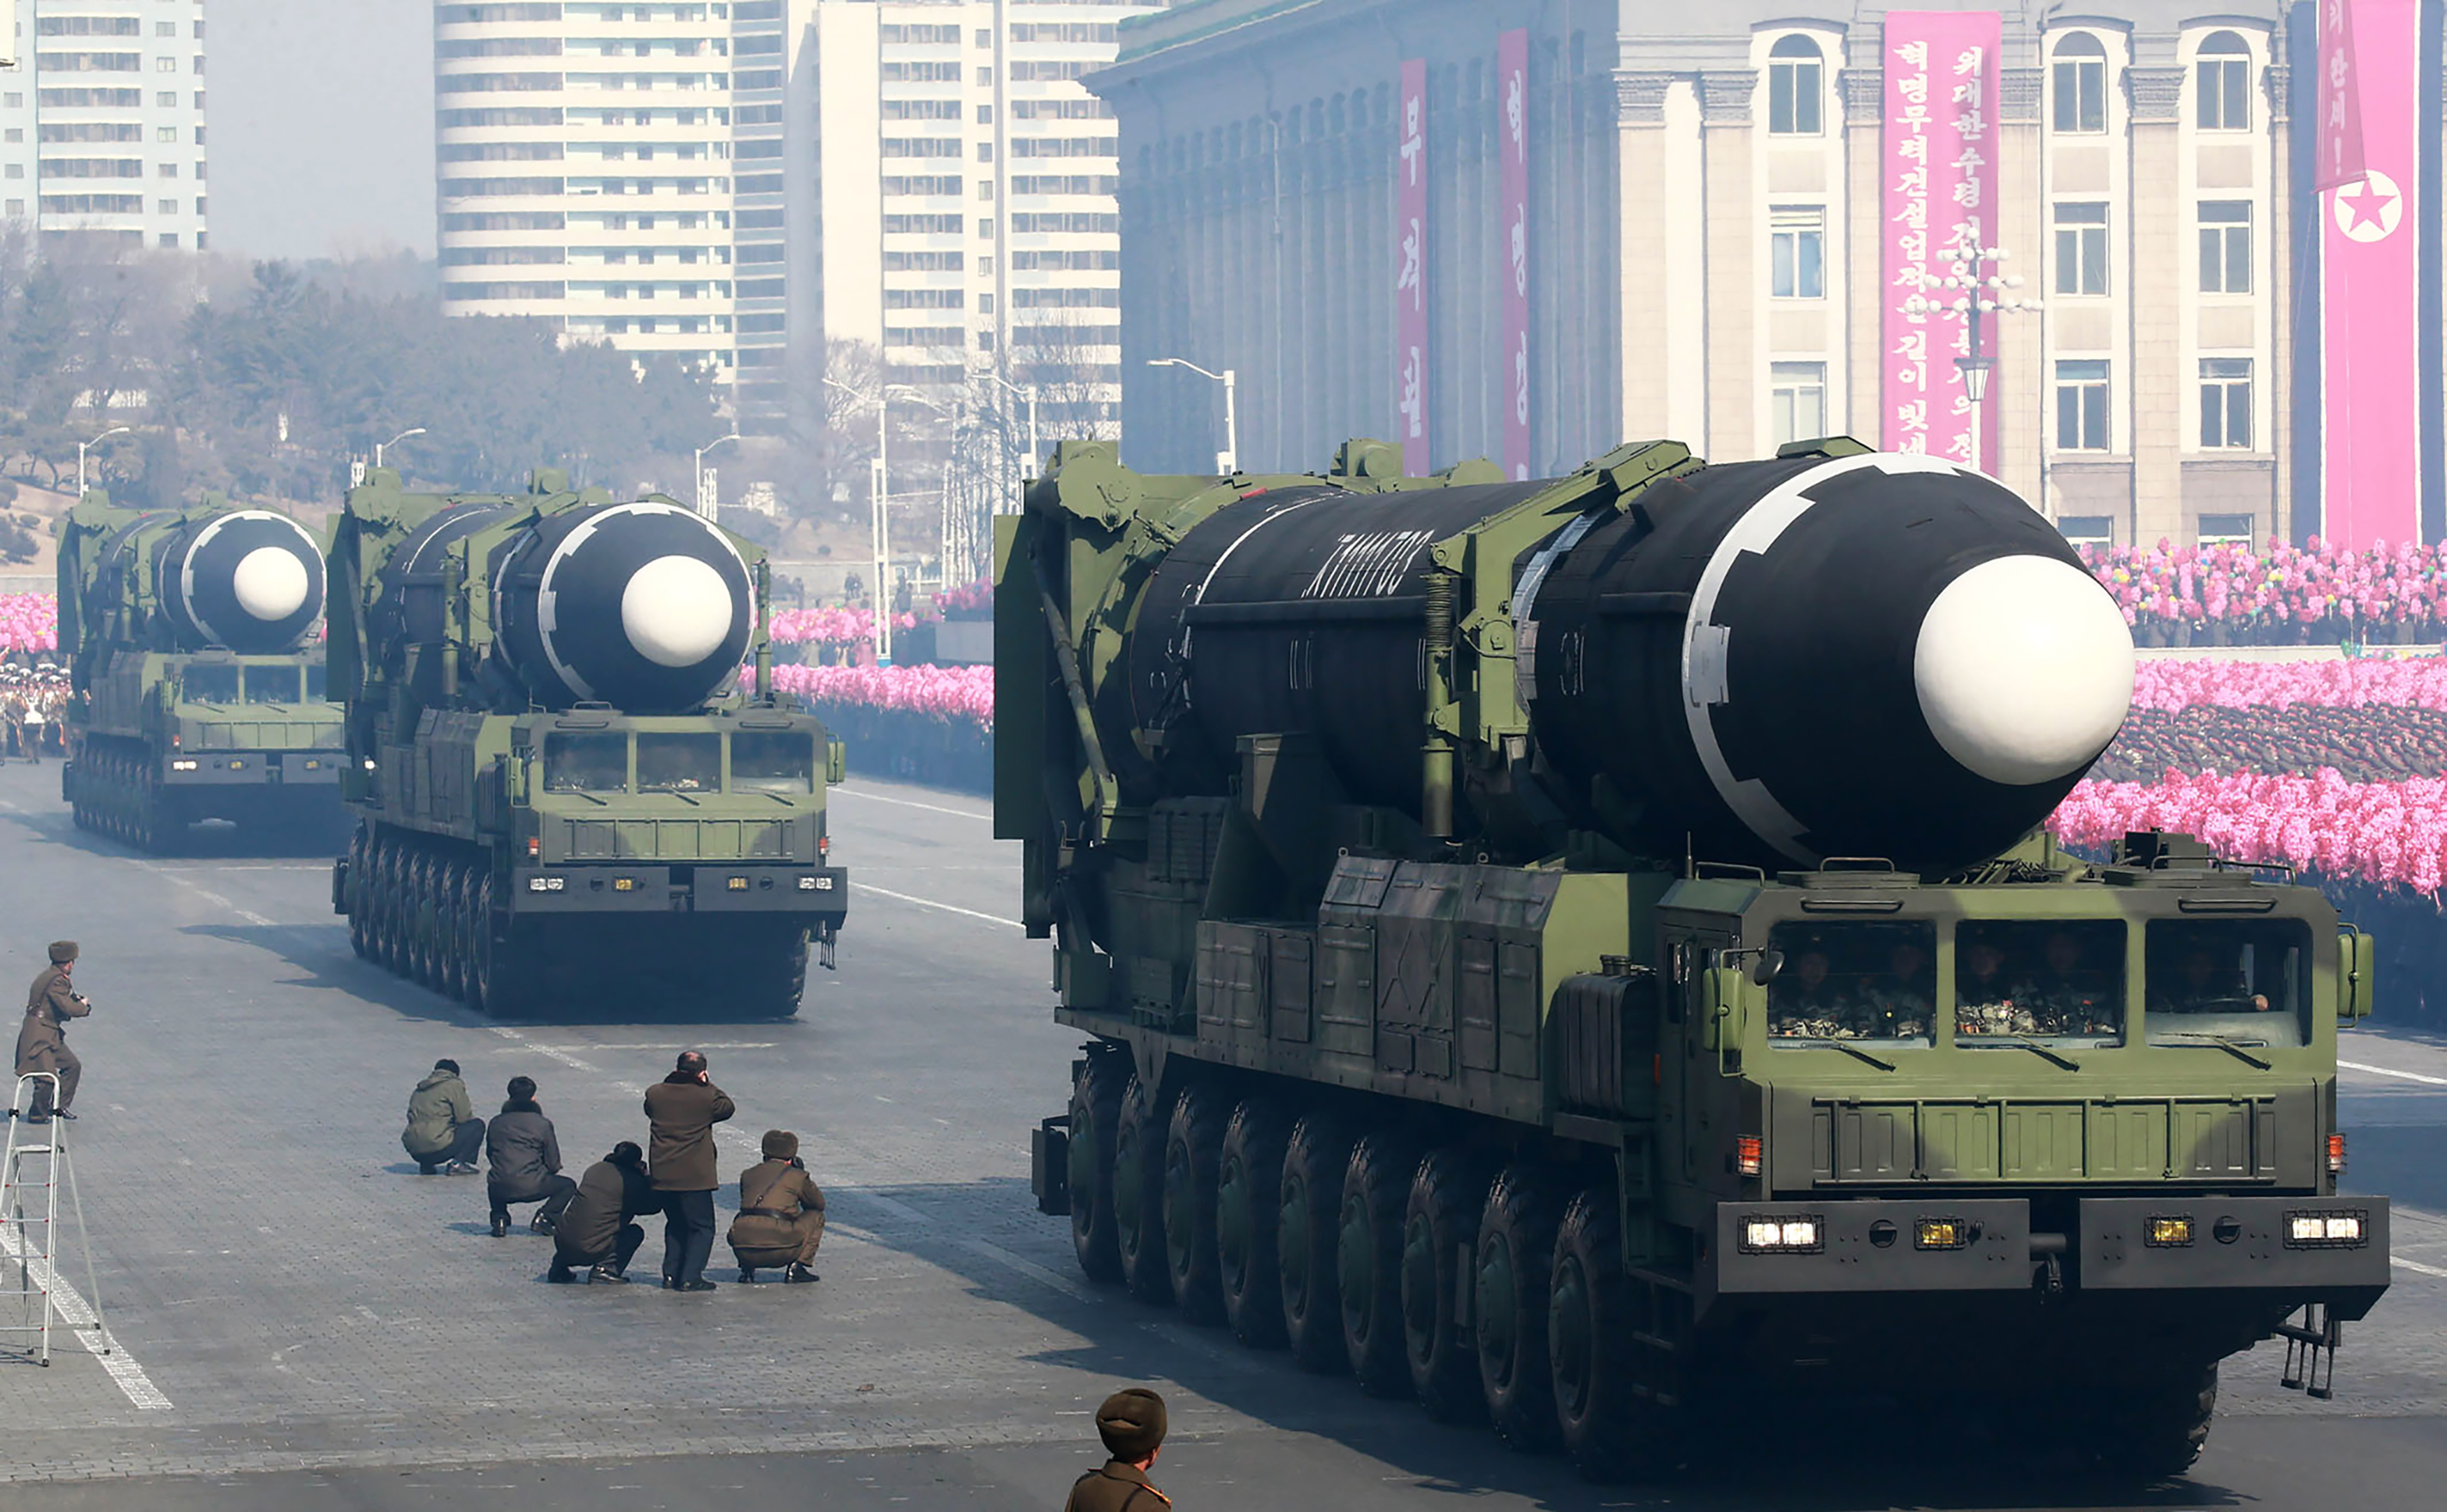 This photo taken on Feb. 8, 2018 and released on Feb.9, 2018 by North Korea's official Korean Central News Agency (KCNA) shows Hwasong-15 ballistic missile during the military parade to mark the 70th anniversary of the Korean People's Army in Pyongyang.